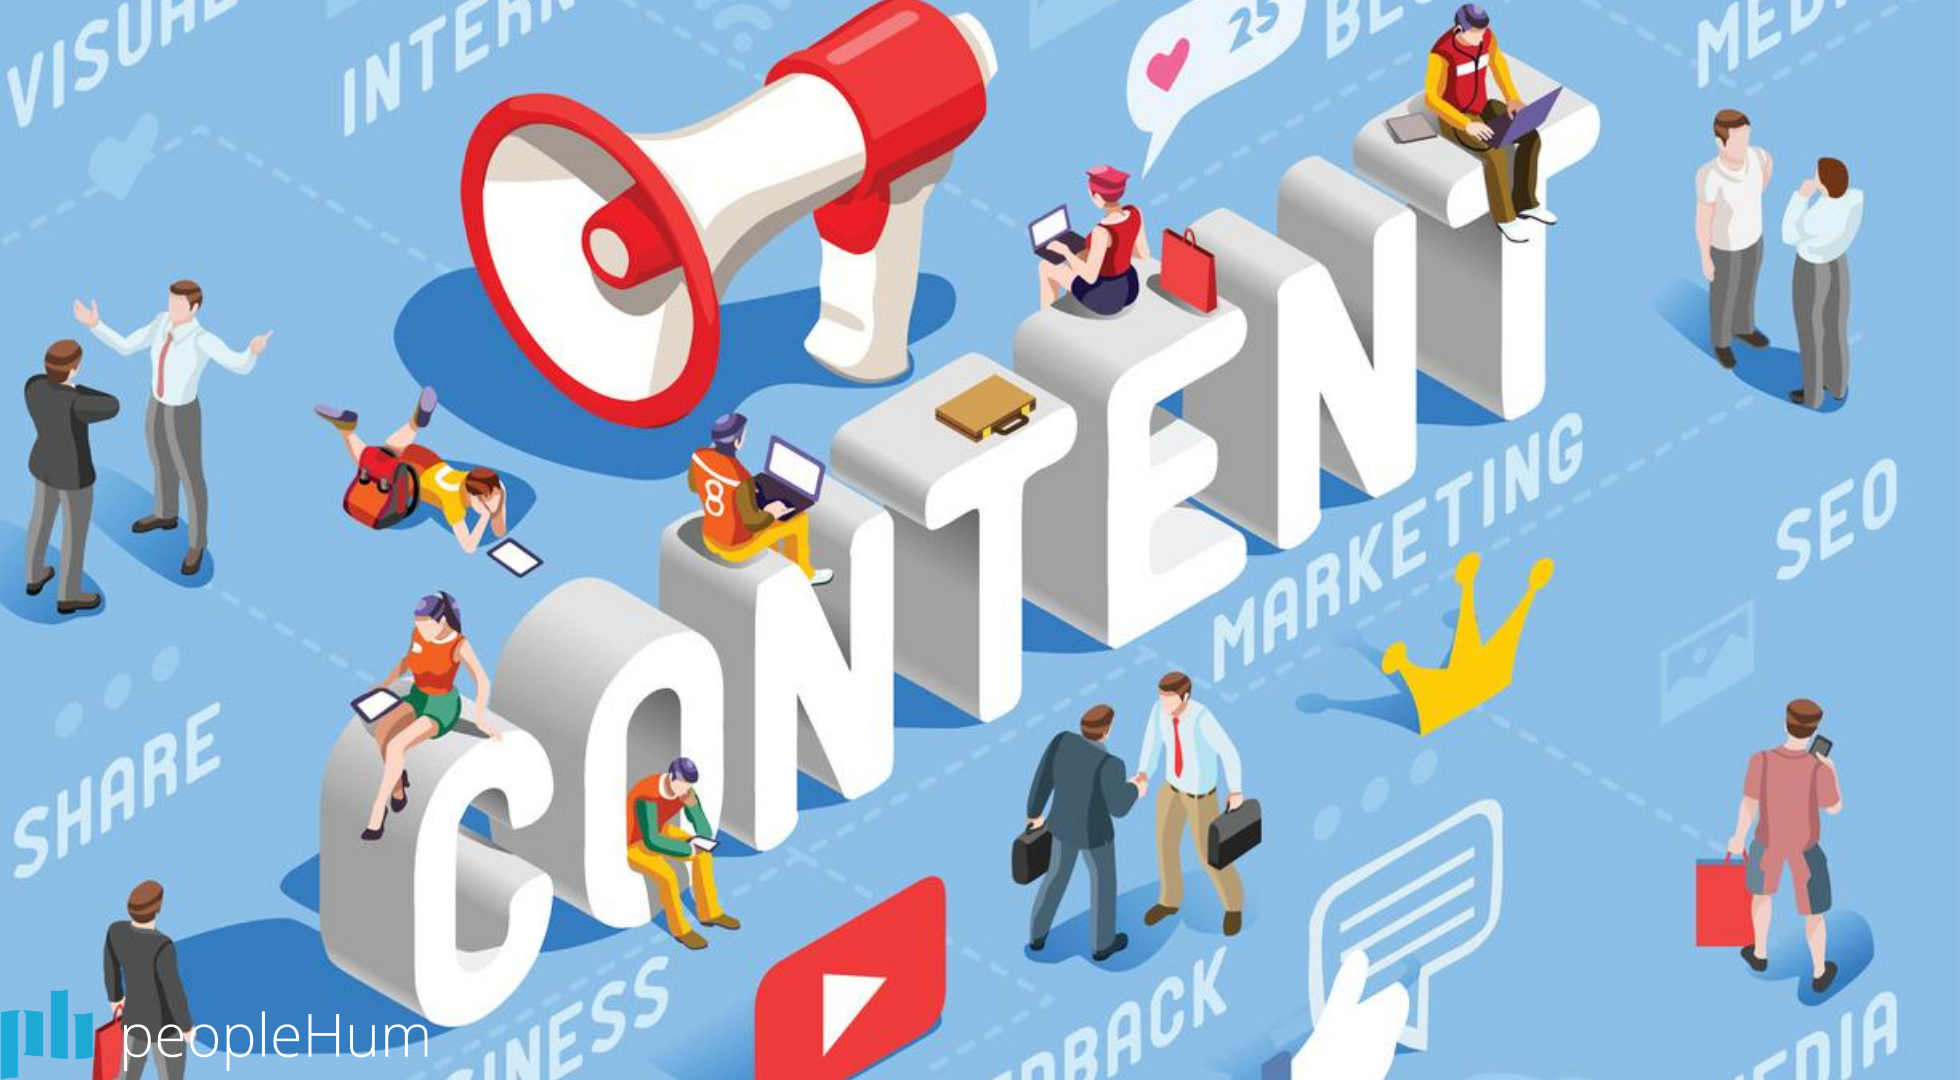 Ephemeral content will keep gaining popularity